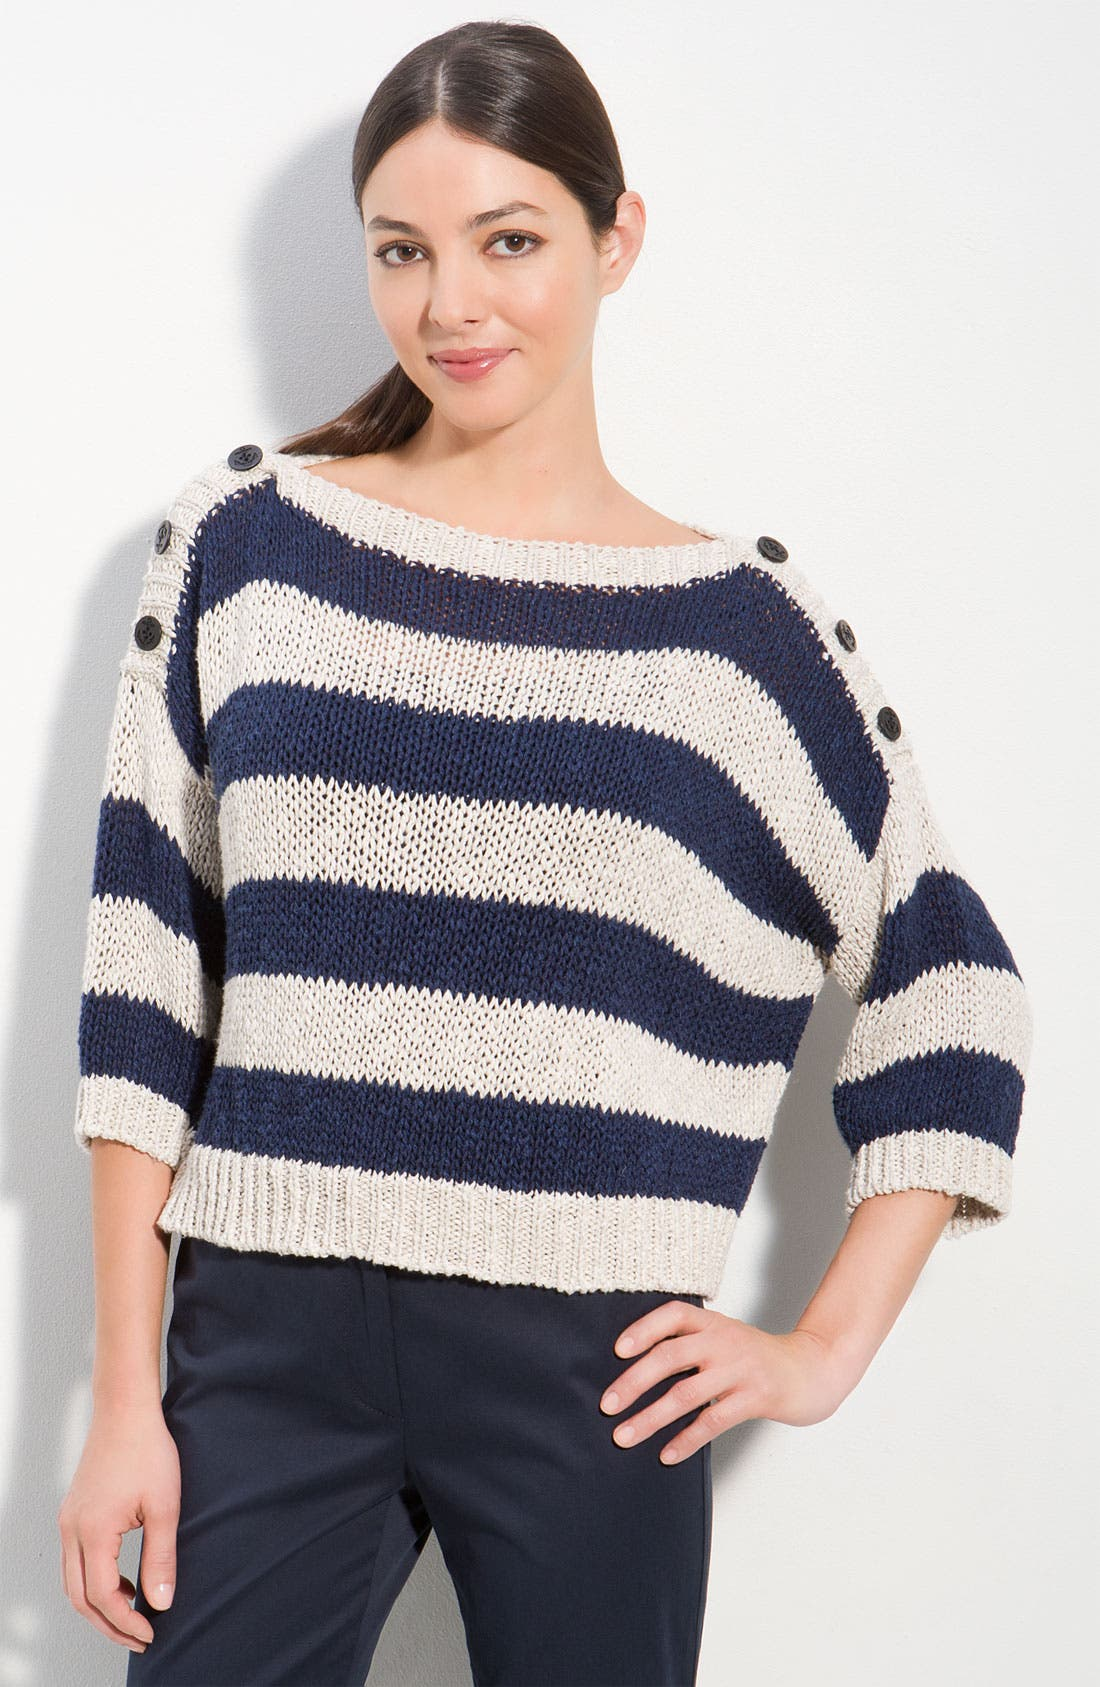 Main Image - Weekend Max Mara 'Dresda' Crop Sweater